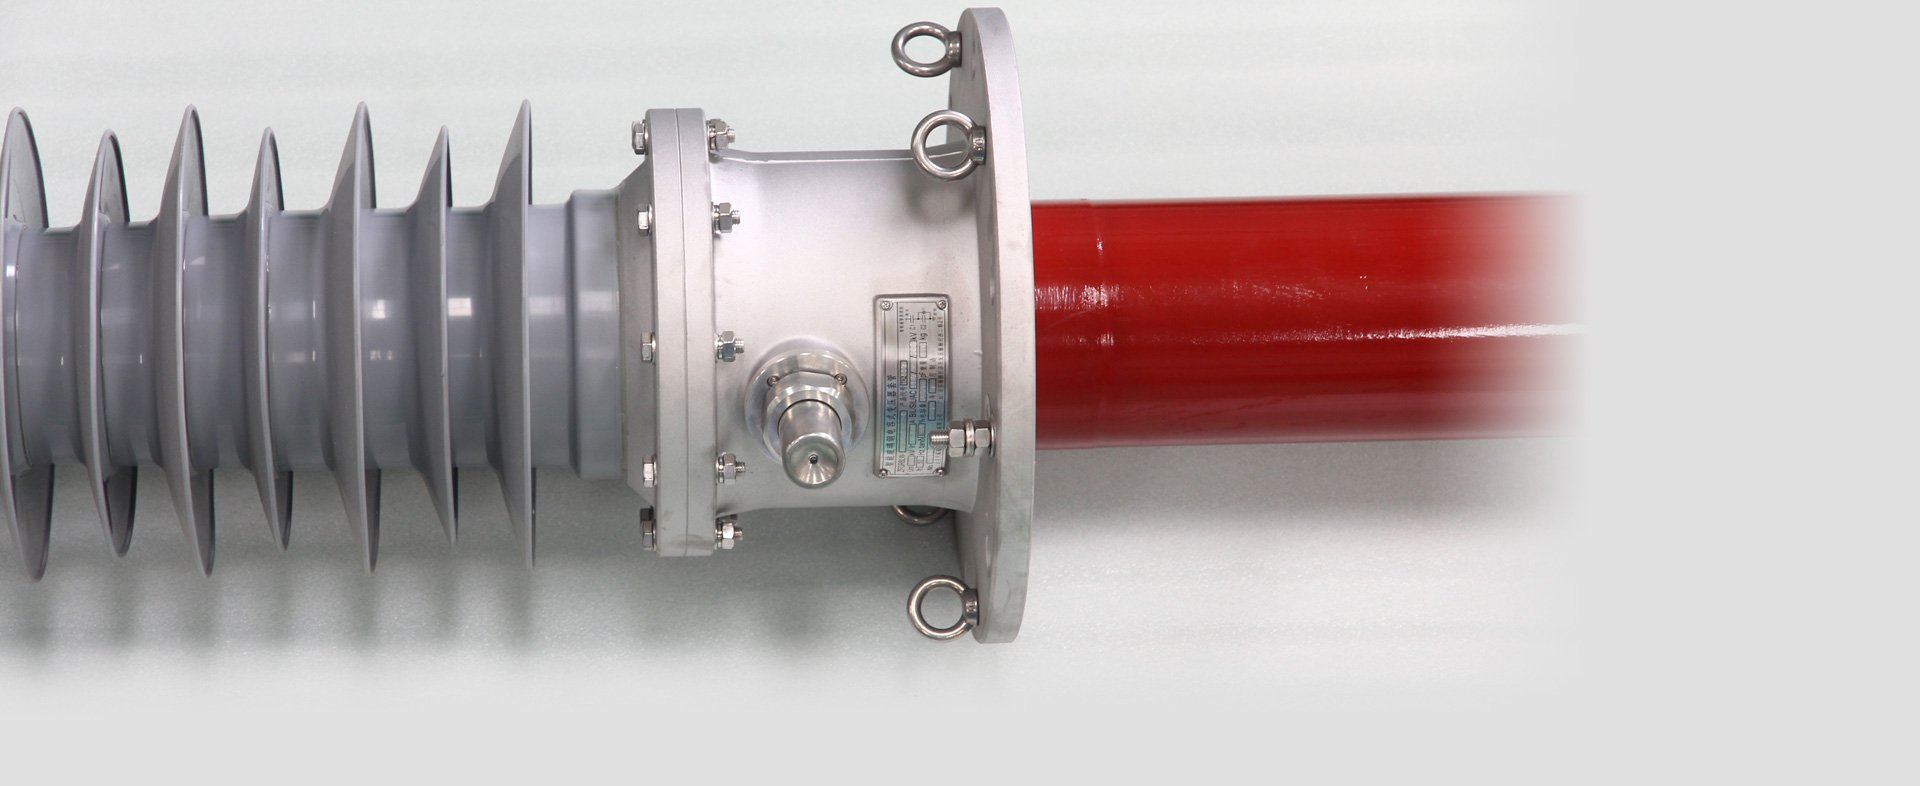 Built-in monitoring of high voltage insulation degradation available in all RHM International products